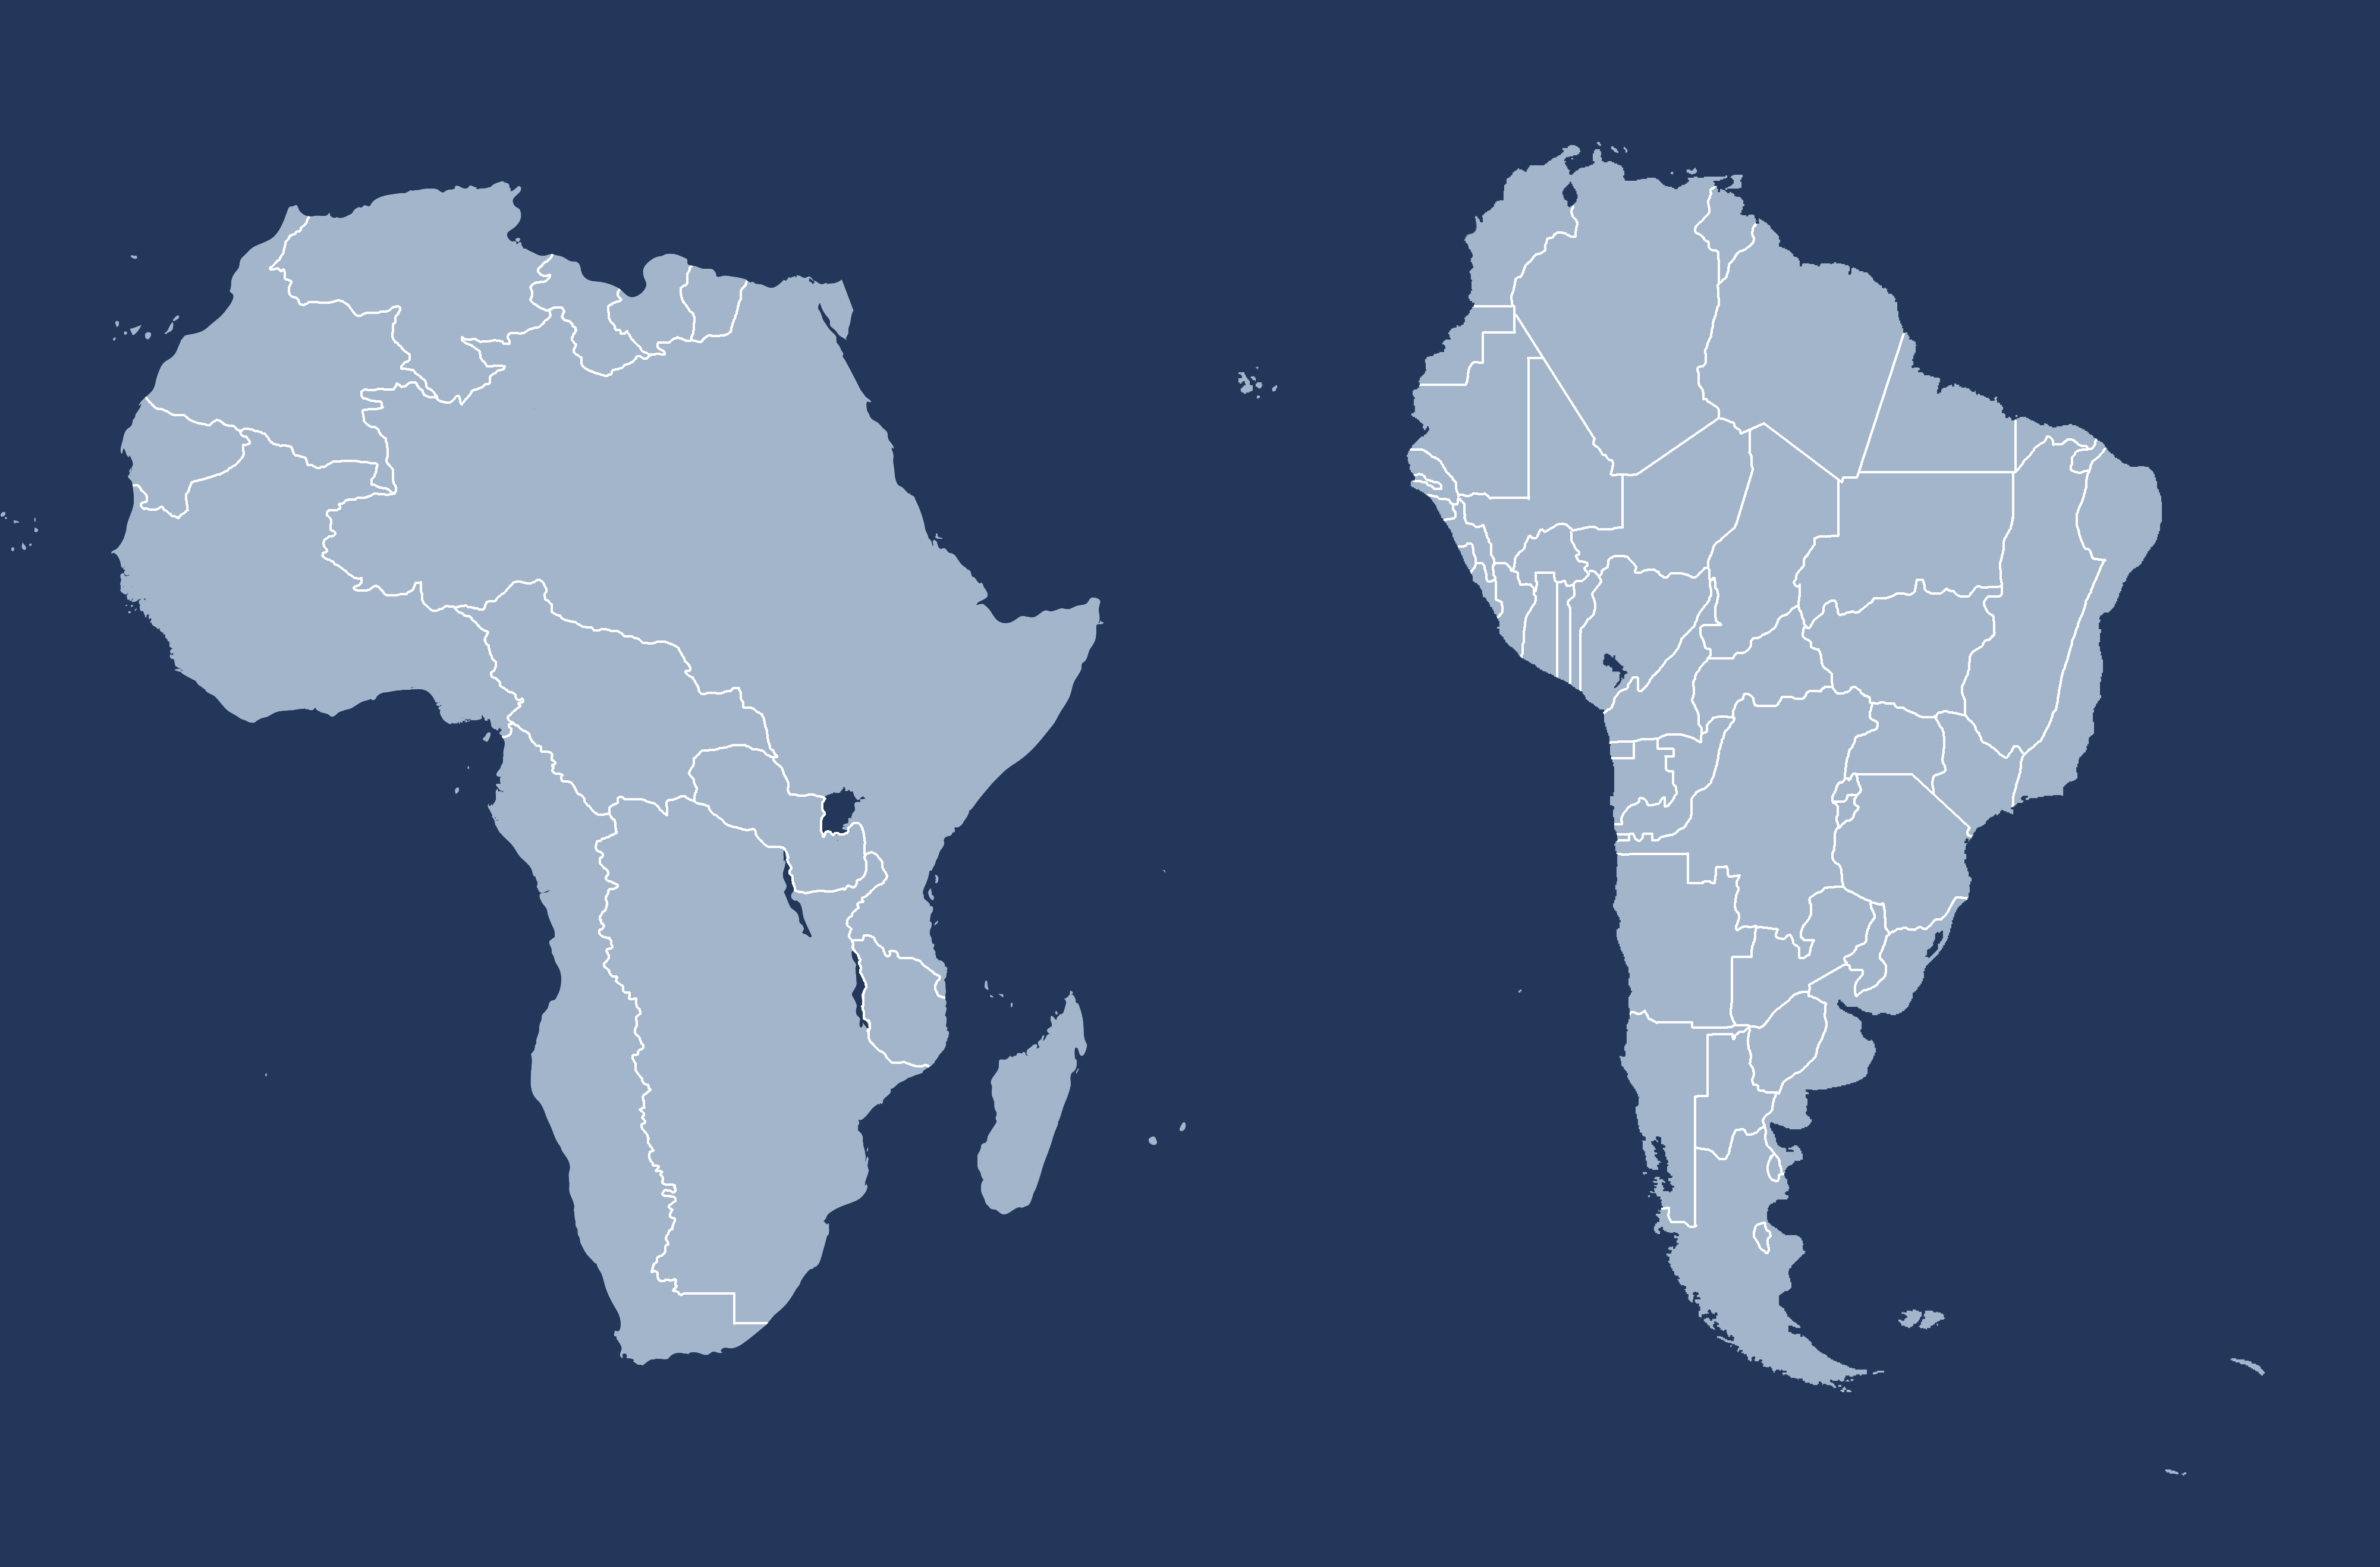 Separated at birth : South America and Africa with switched